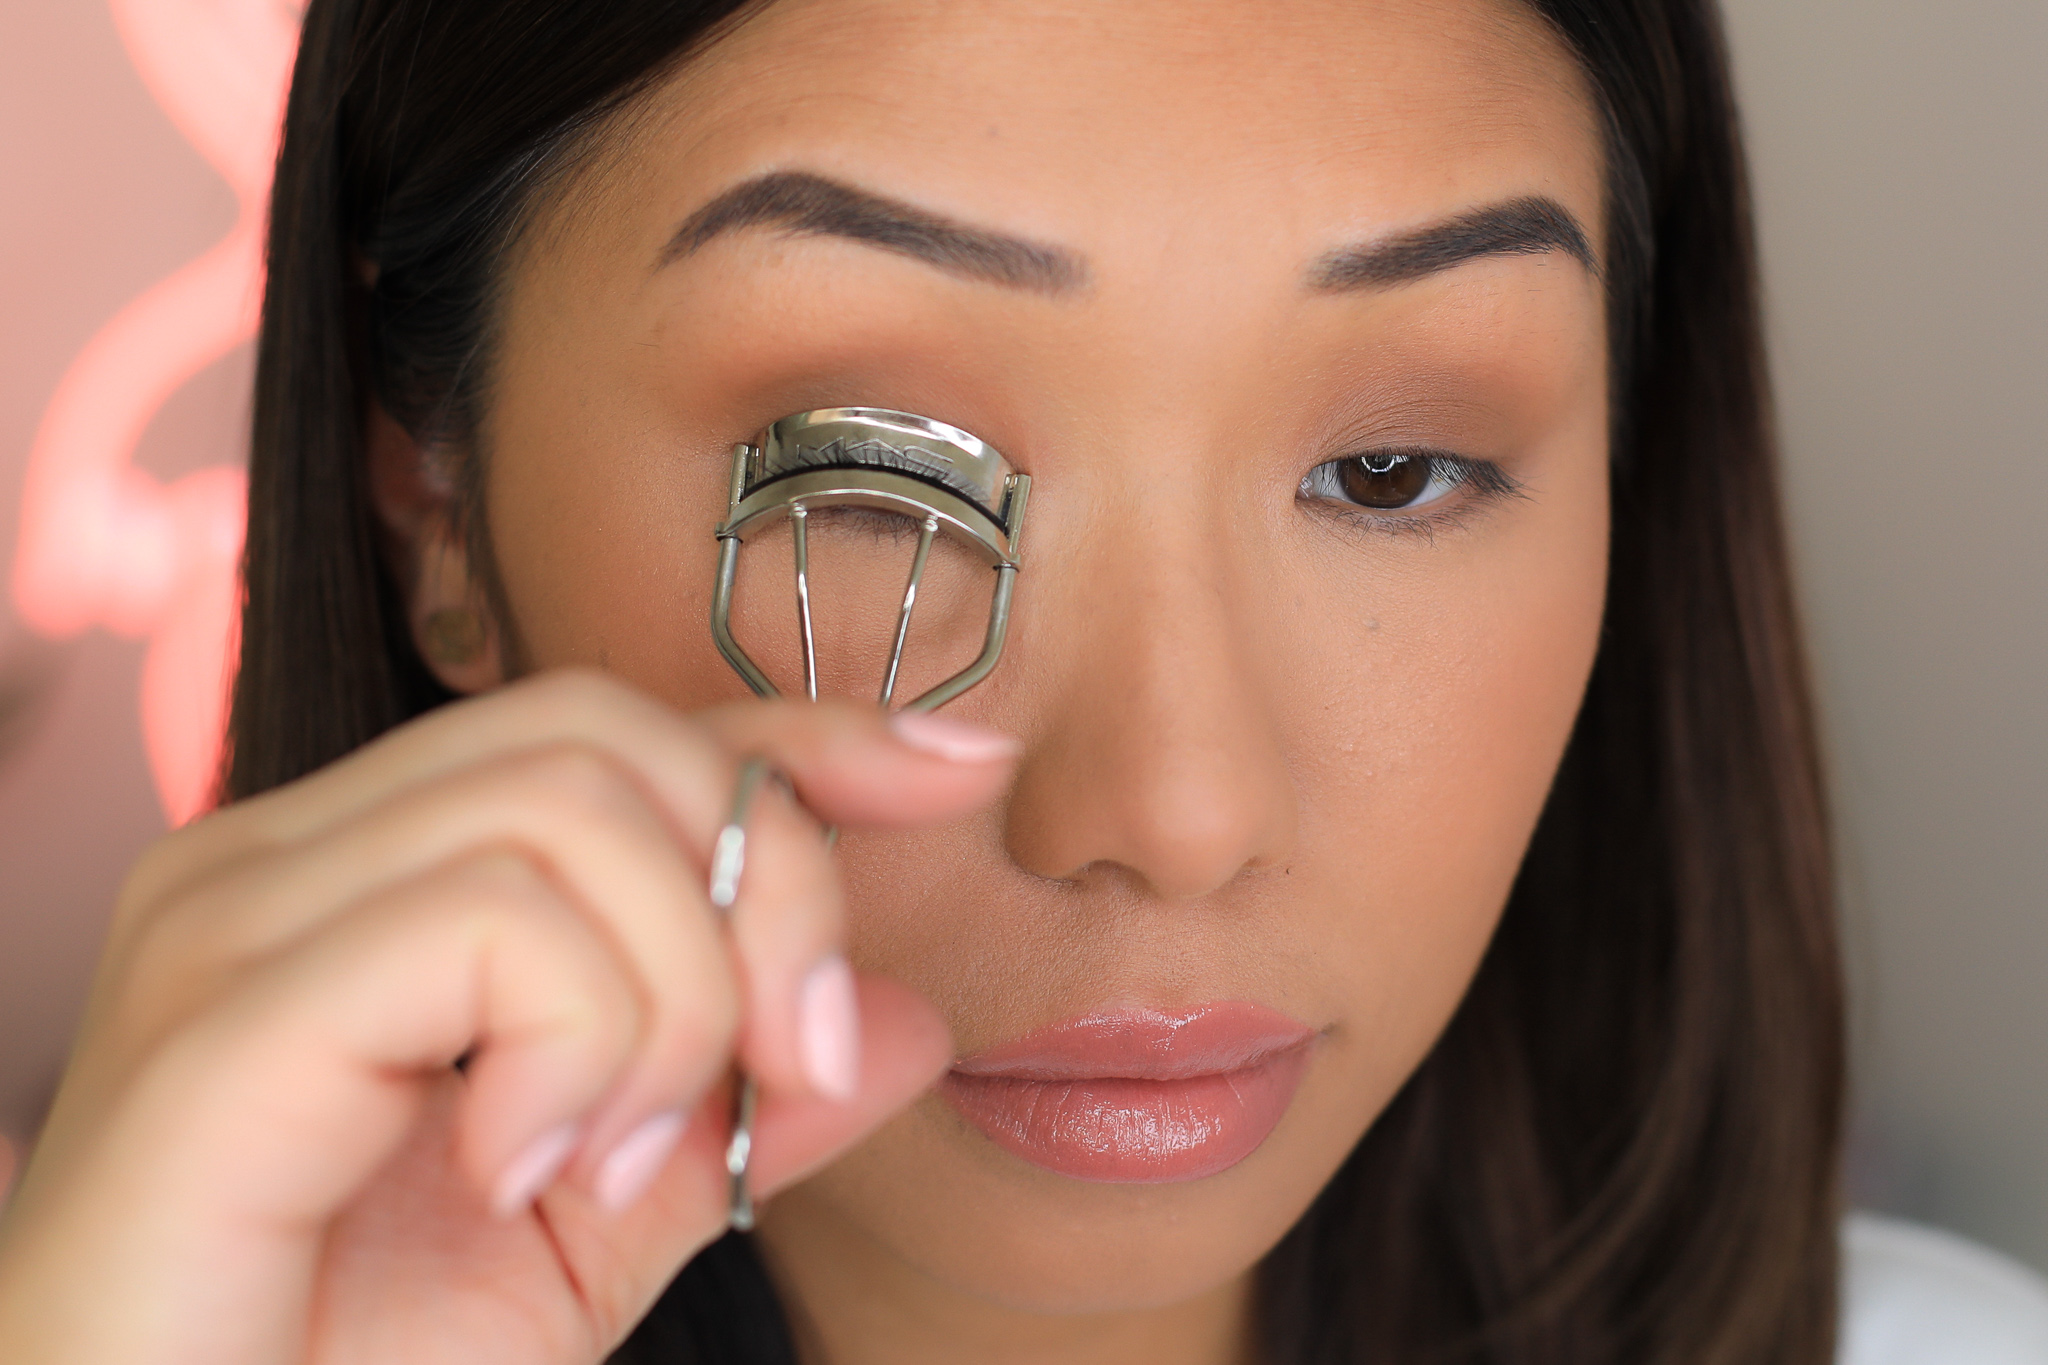 - Step 2: Take a MAC eyelash curler, curl your lashes using 3-4 clamps working your way from the base of the lashes to the tip to create a C curl.After the last curl,go ahead and do 1 more curl right at the base for an extra lift.